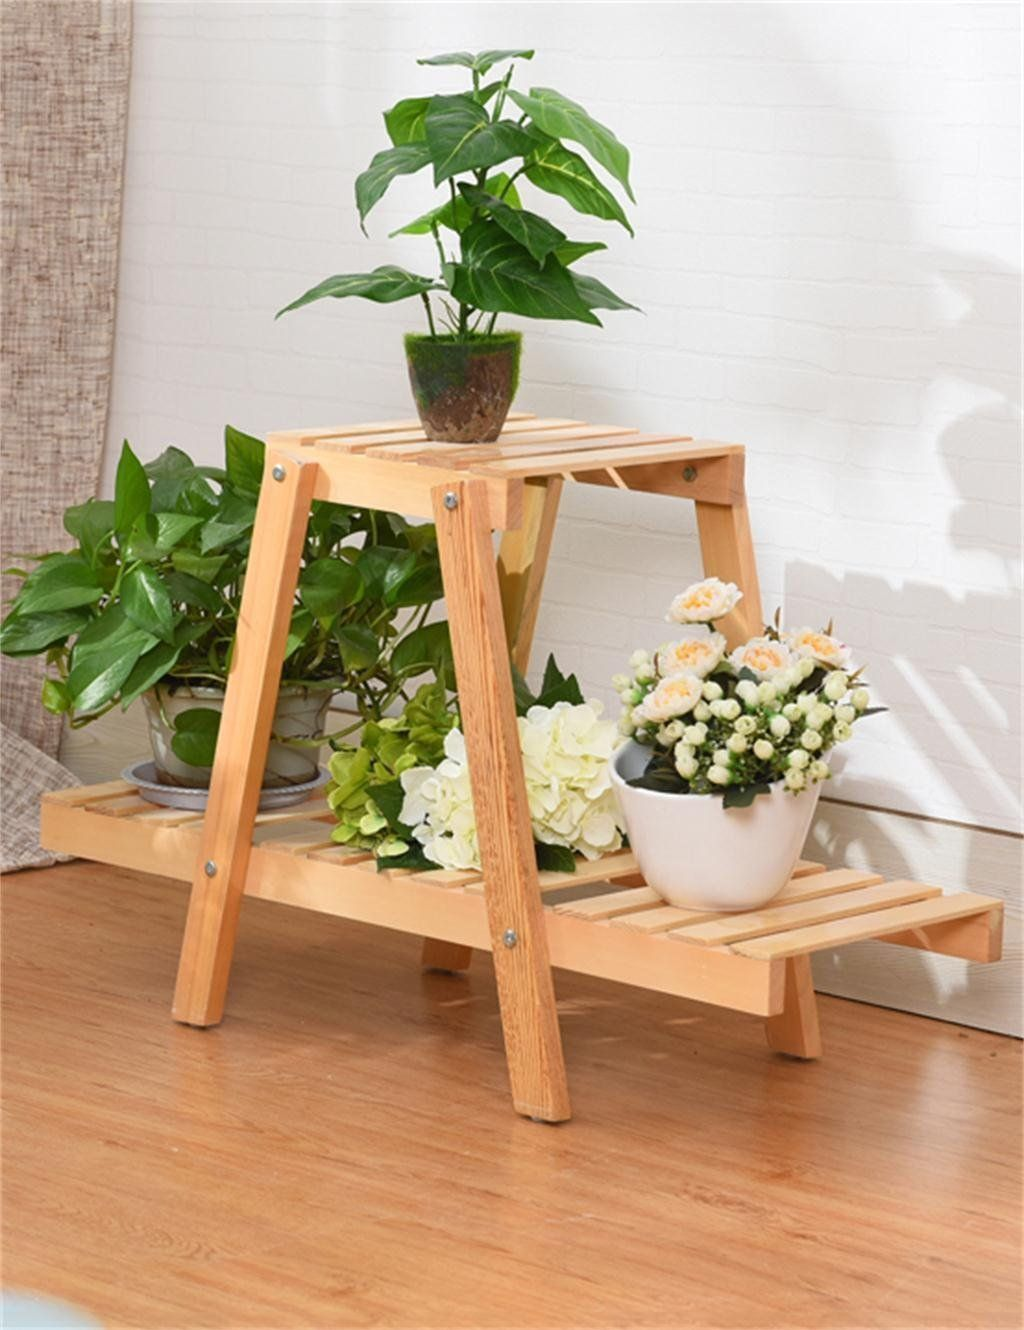 20 do it yourself plant stands that let you discover your